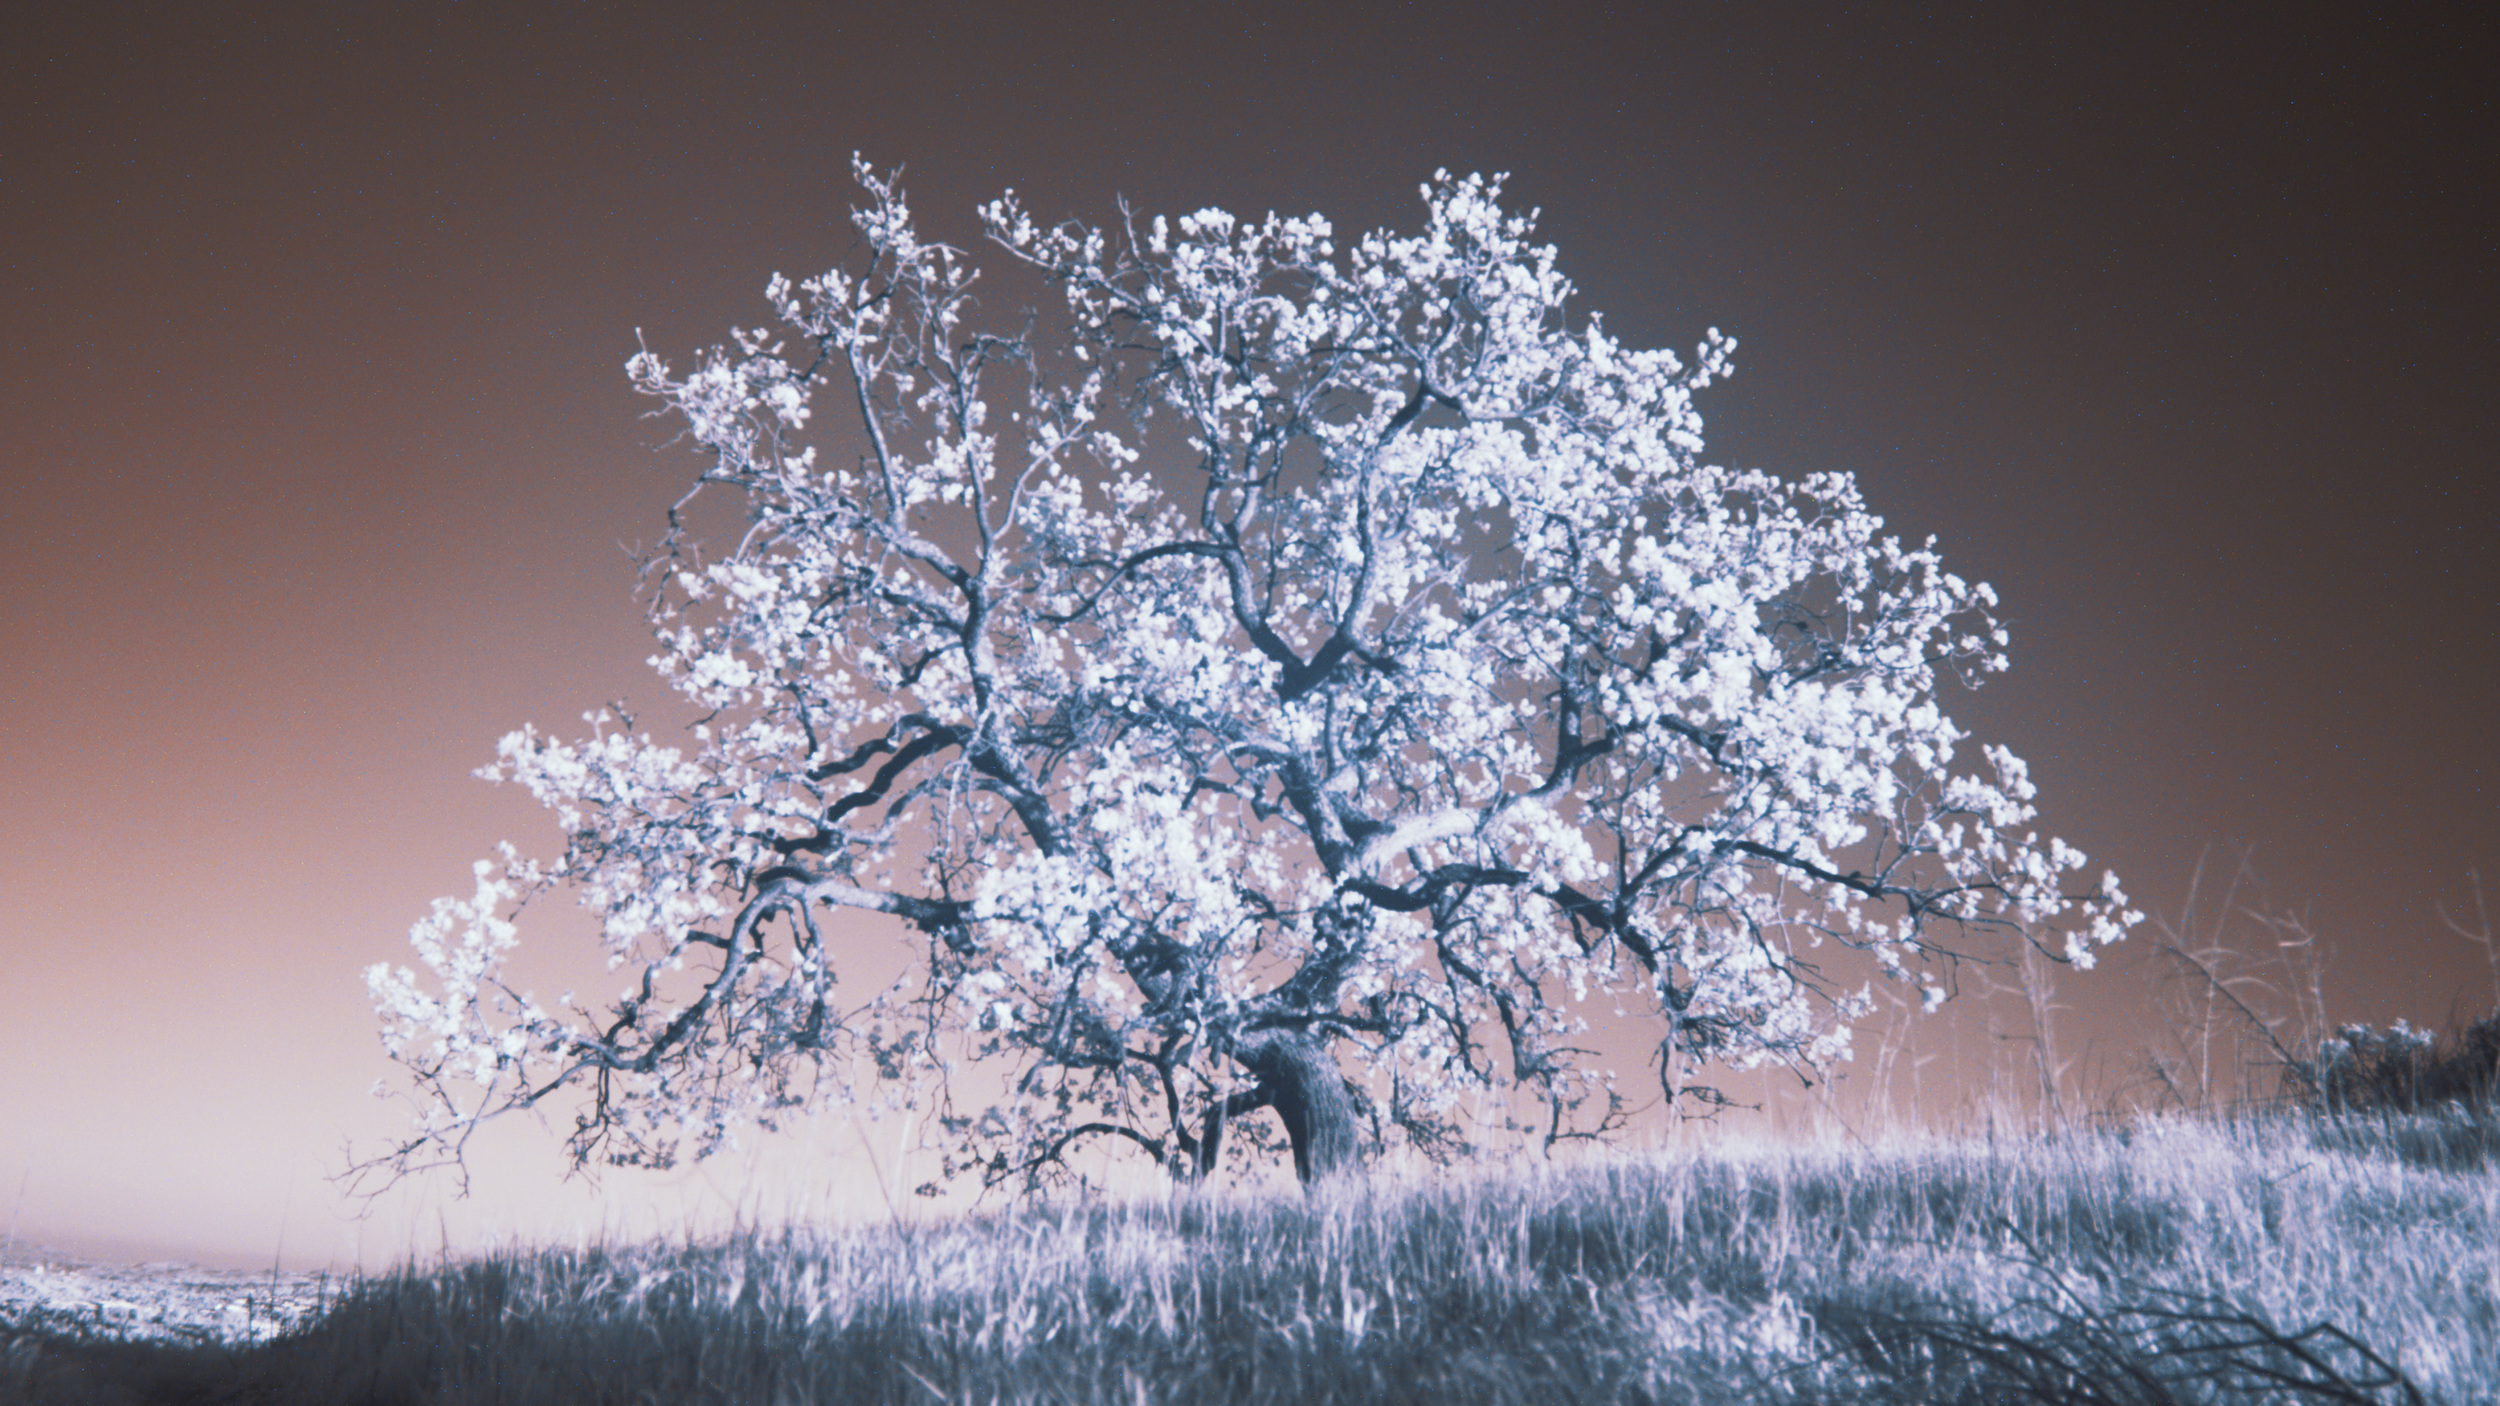 OakTree_InfraRed_Colorized_v1 (00000).jpg